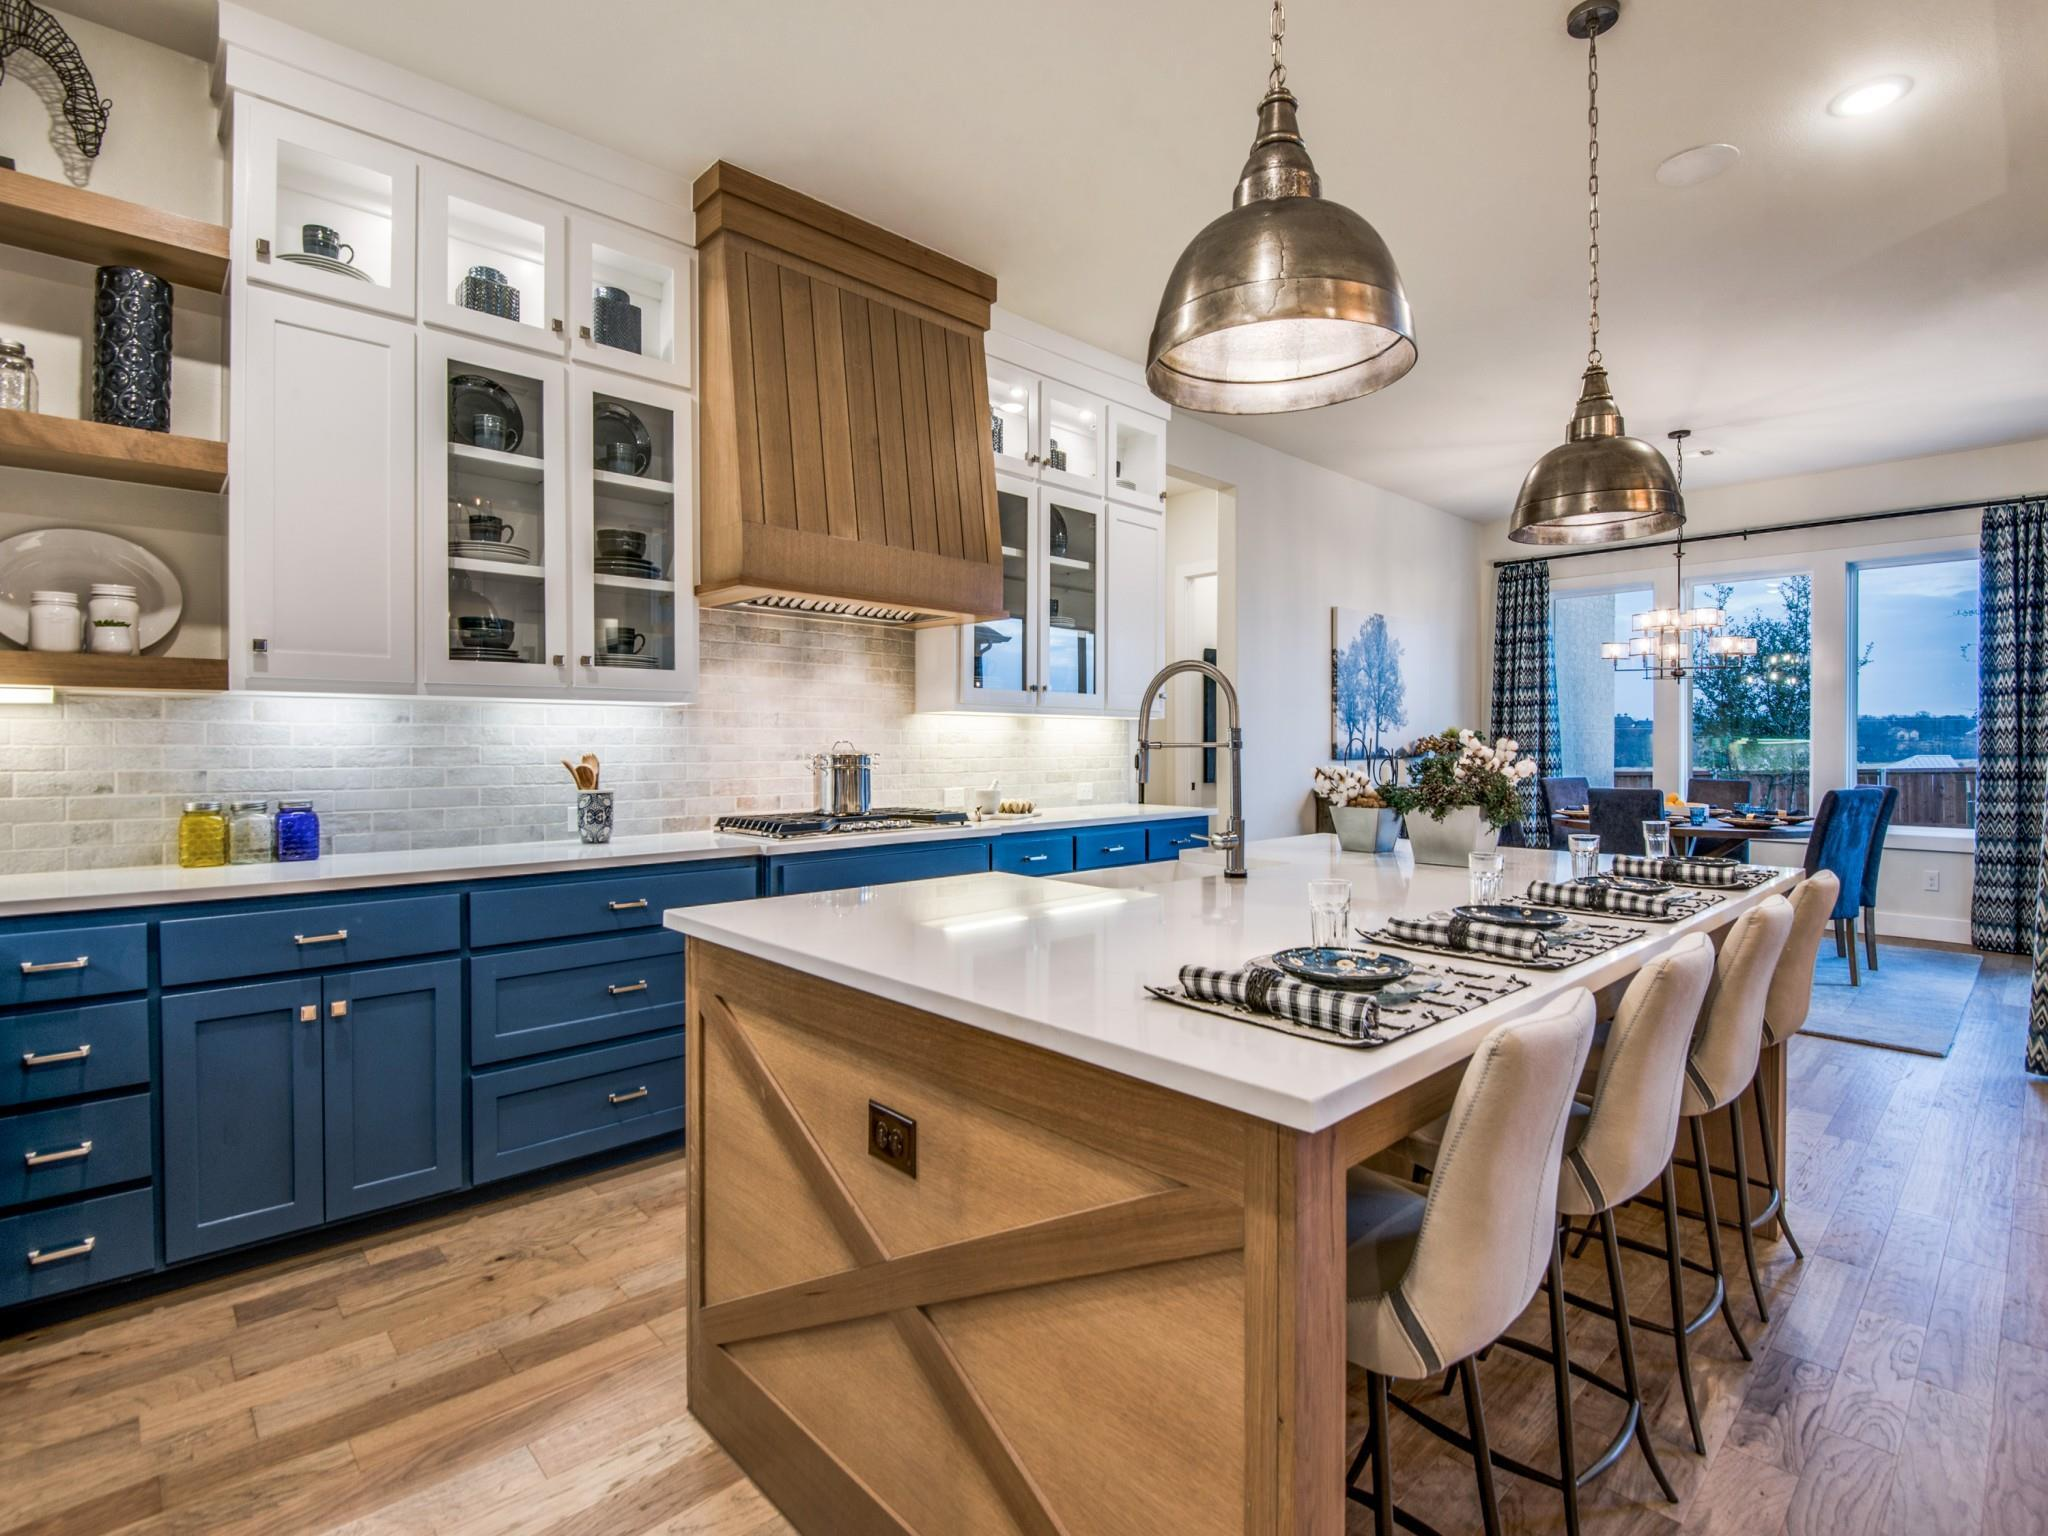 Kitchen featured in The Fredericksburg | 70103.1 By Southgate Homes in Dallas, TX